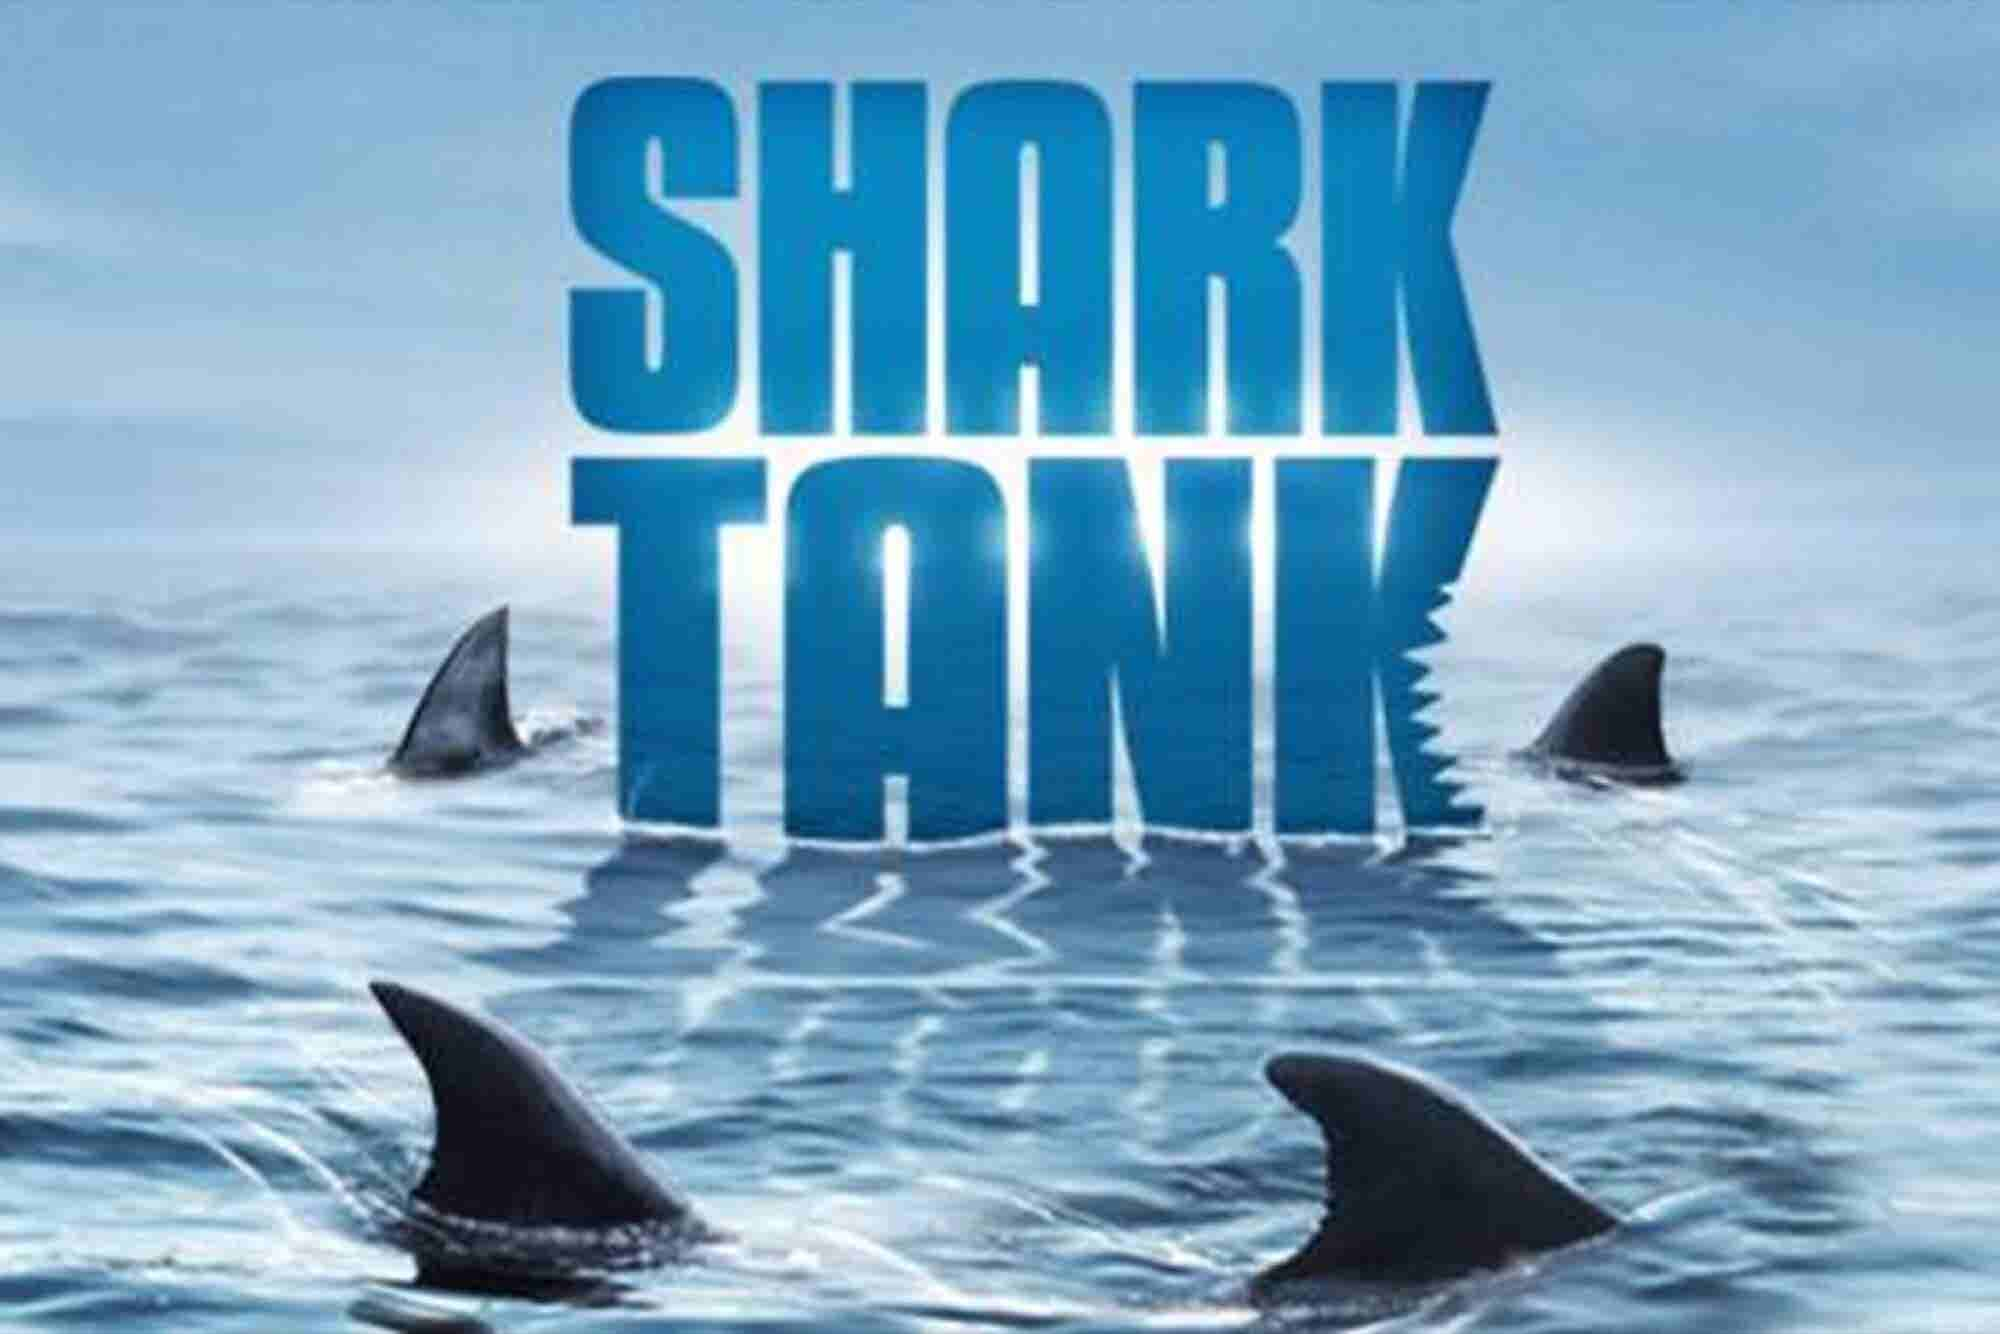 Meet the New Shark Tank Sharks: Ashton Kutcher, Chris Sacca